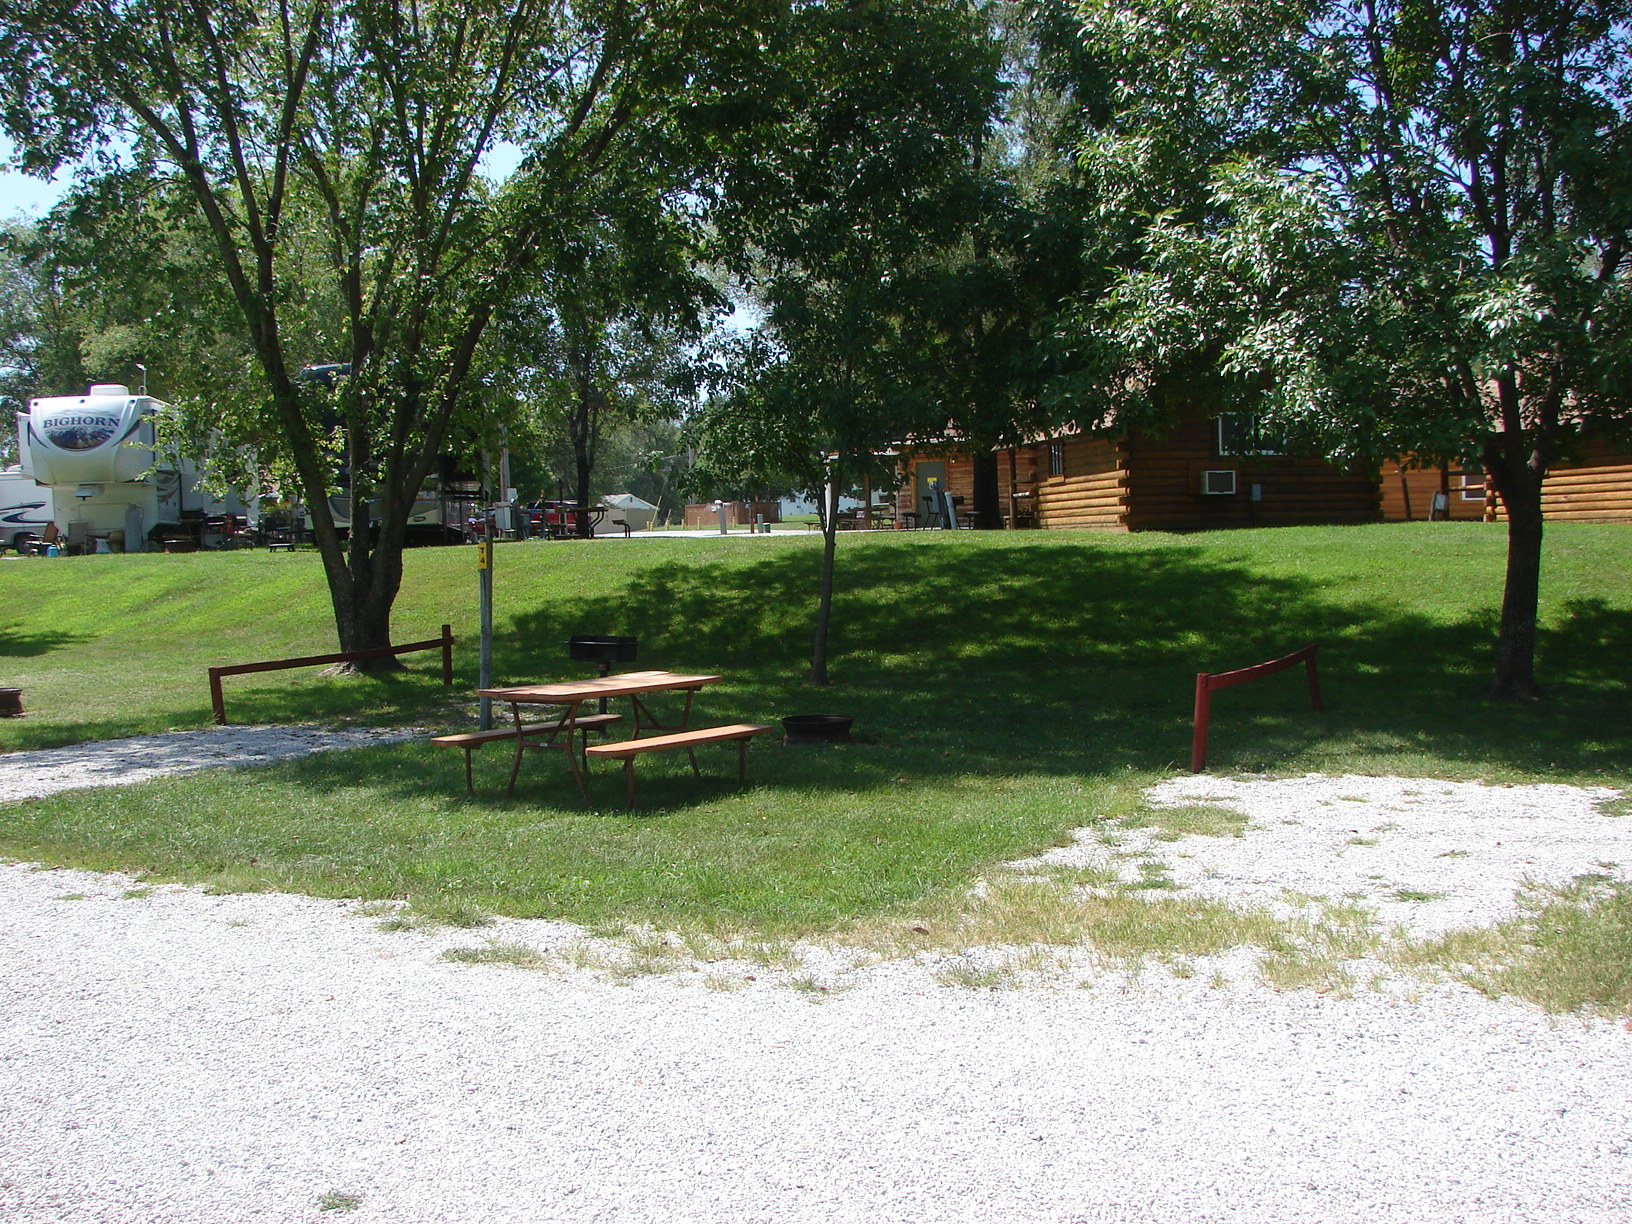 Oak Grove Missouri Tent Camping Sites Kansas City East Oak